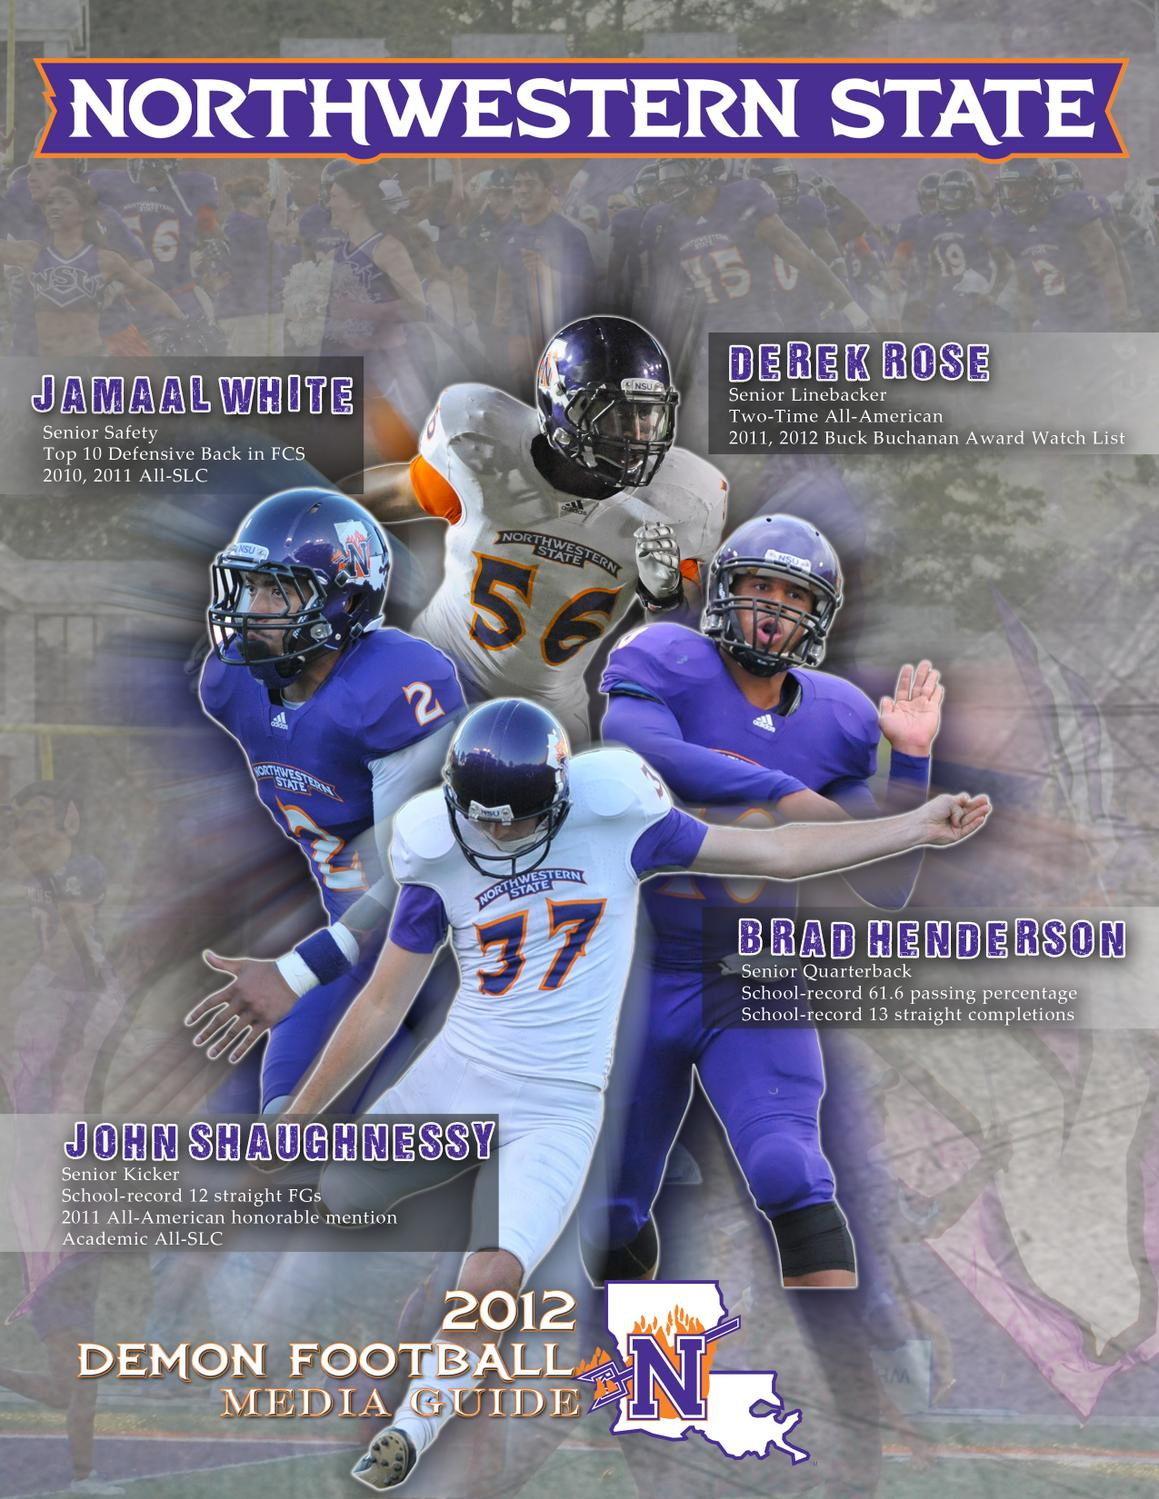 016799db4 2012 Demon Football Media Guide by Northwestern State Athletics - issuu